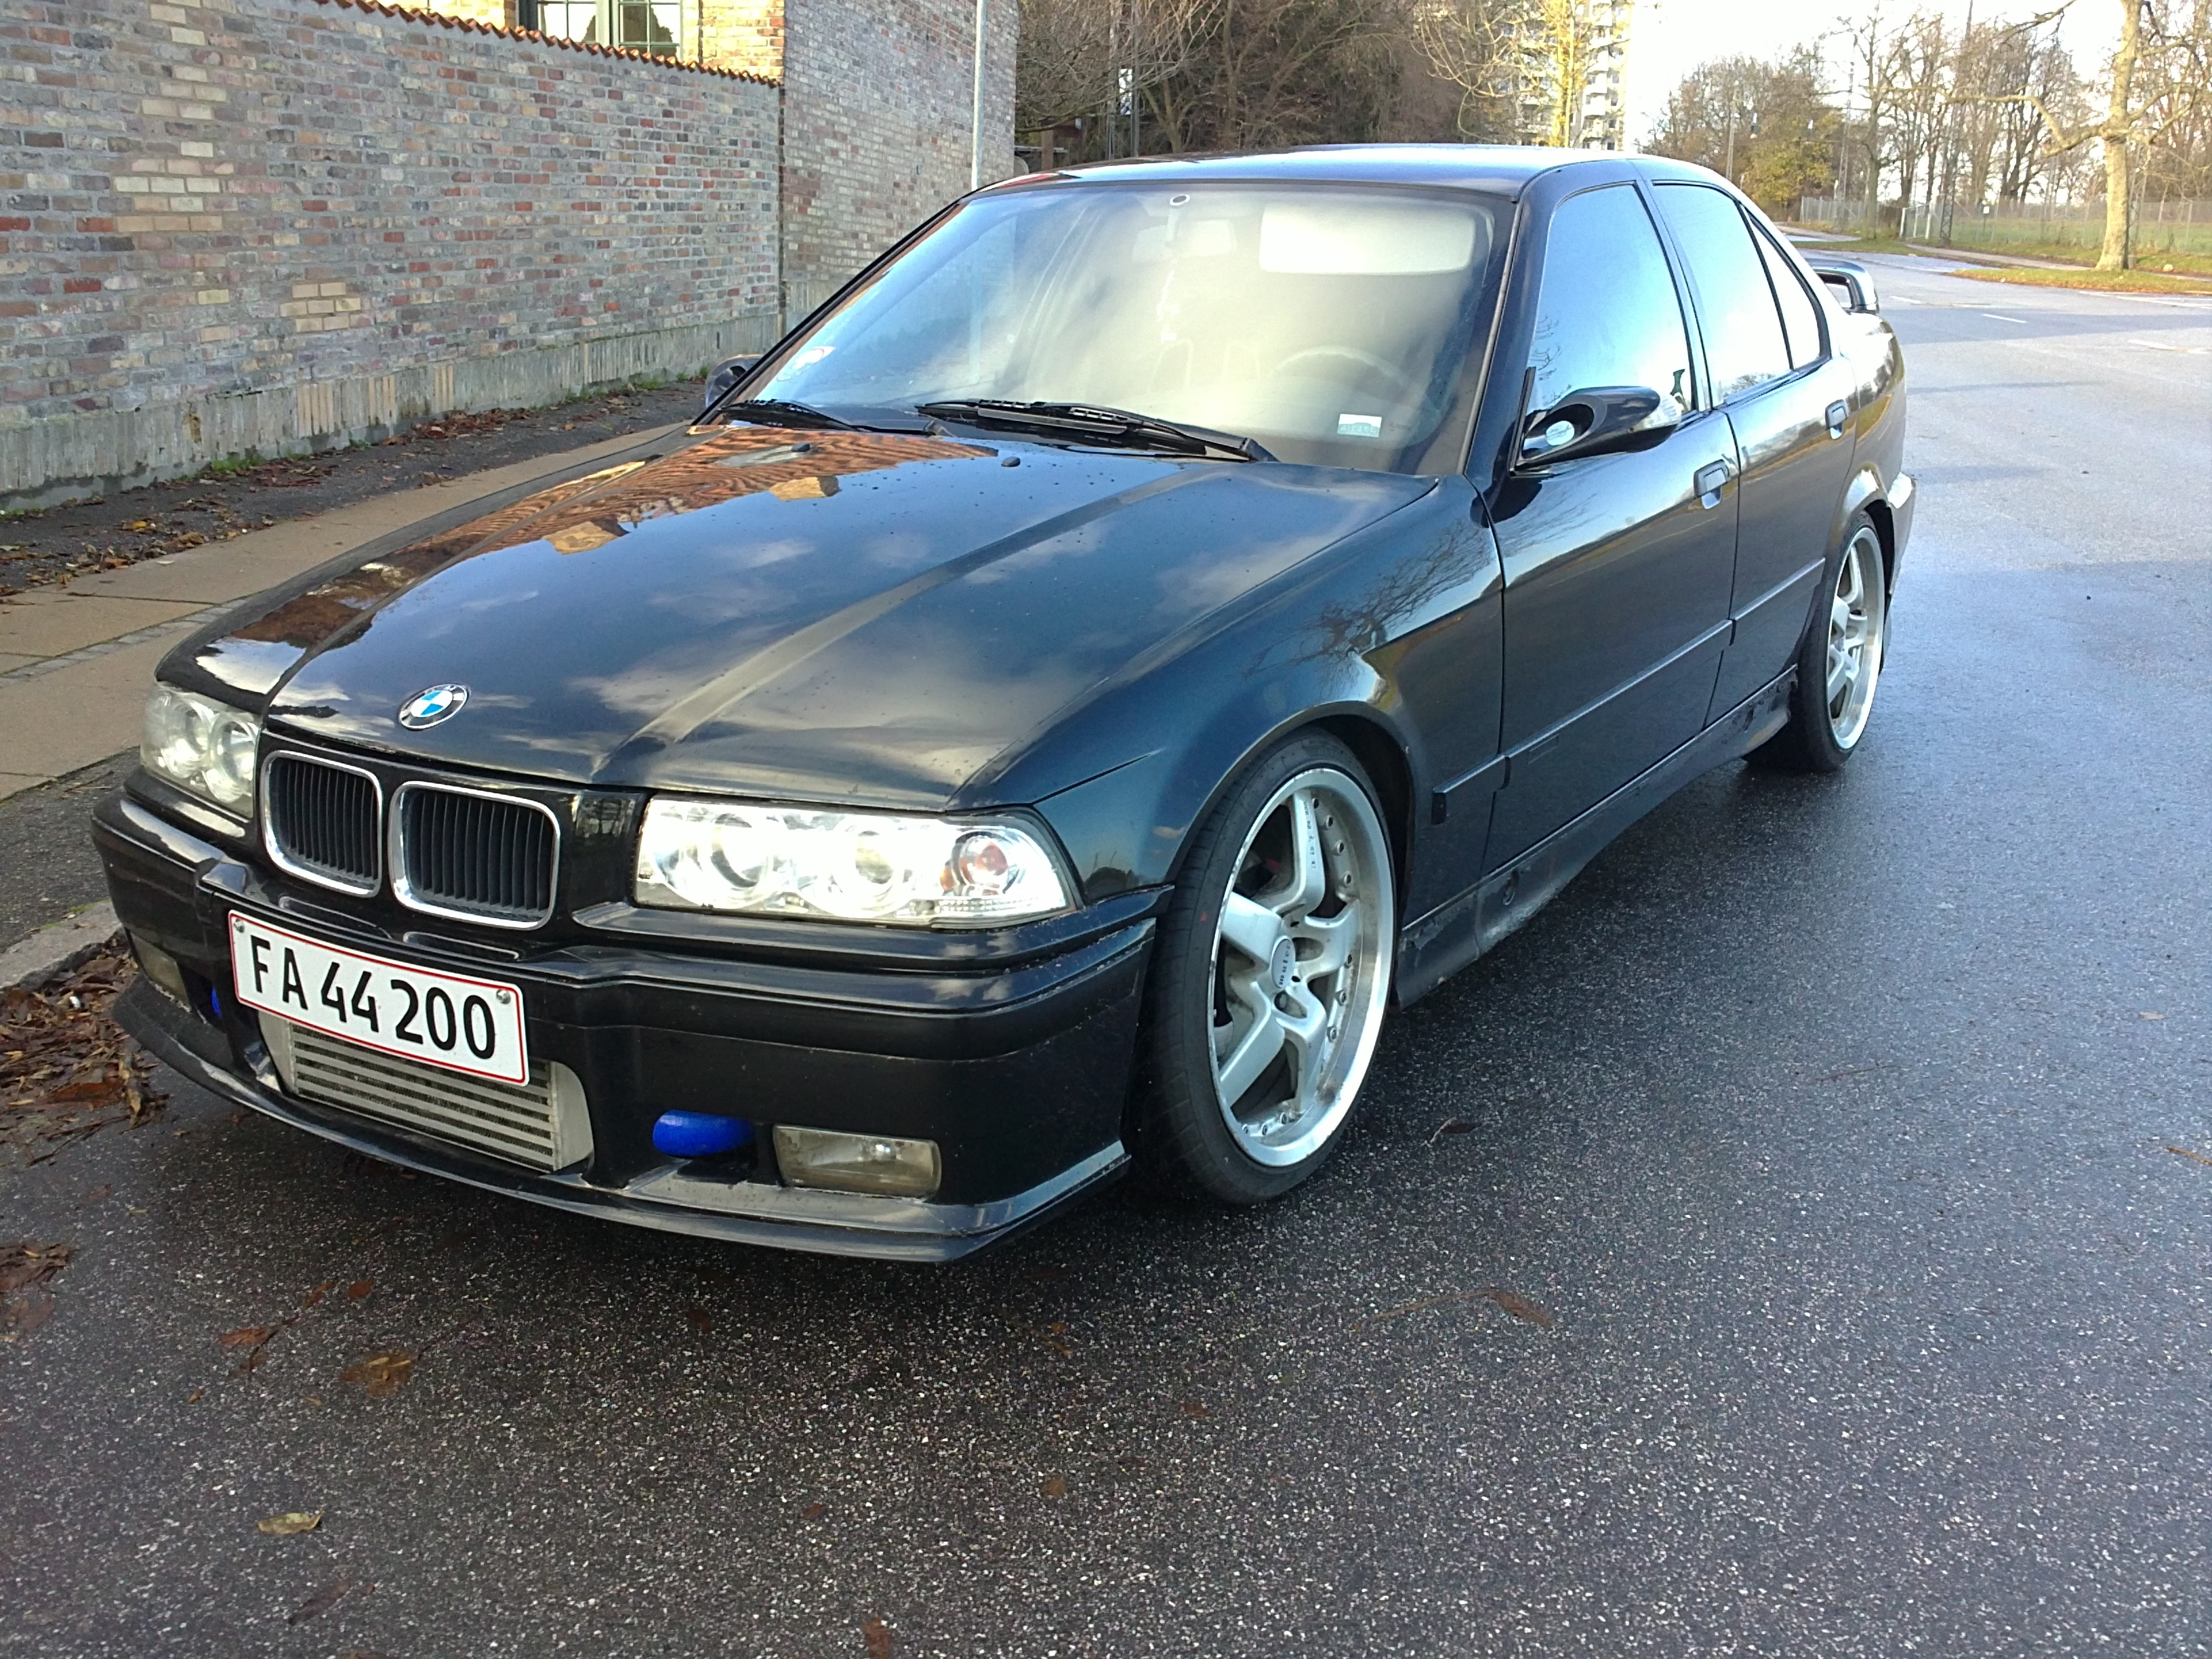 BMW 3 series 318i 1991 photo - 11